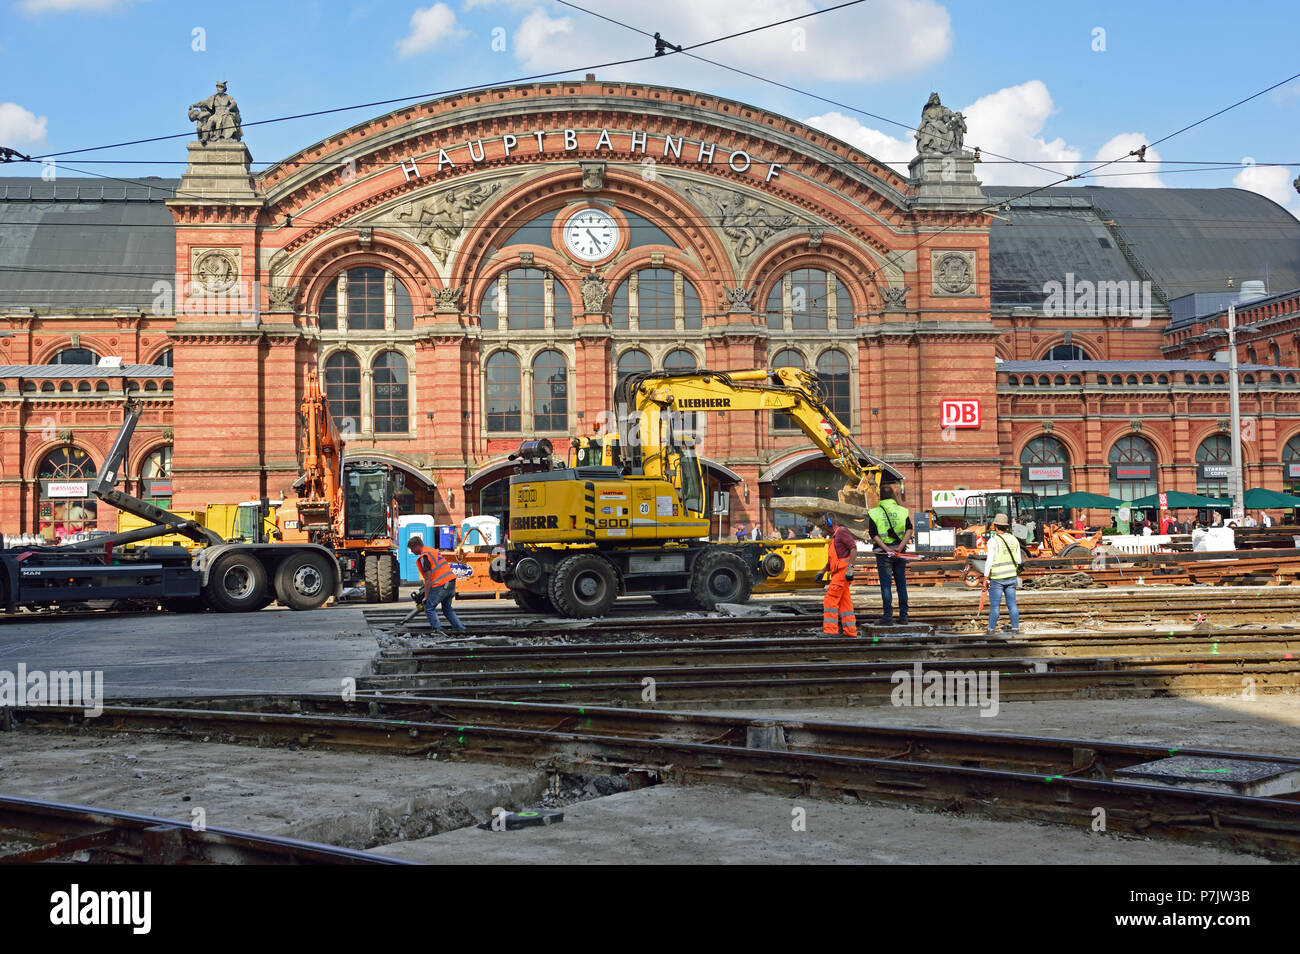 Germany, Bremen, engineering, traffic, streetcar, track construction, civil engineering, renewal of rails, junctions and switches in front of 'Hauptbahnhof' (main station), forecourt, - Stock Image